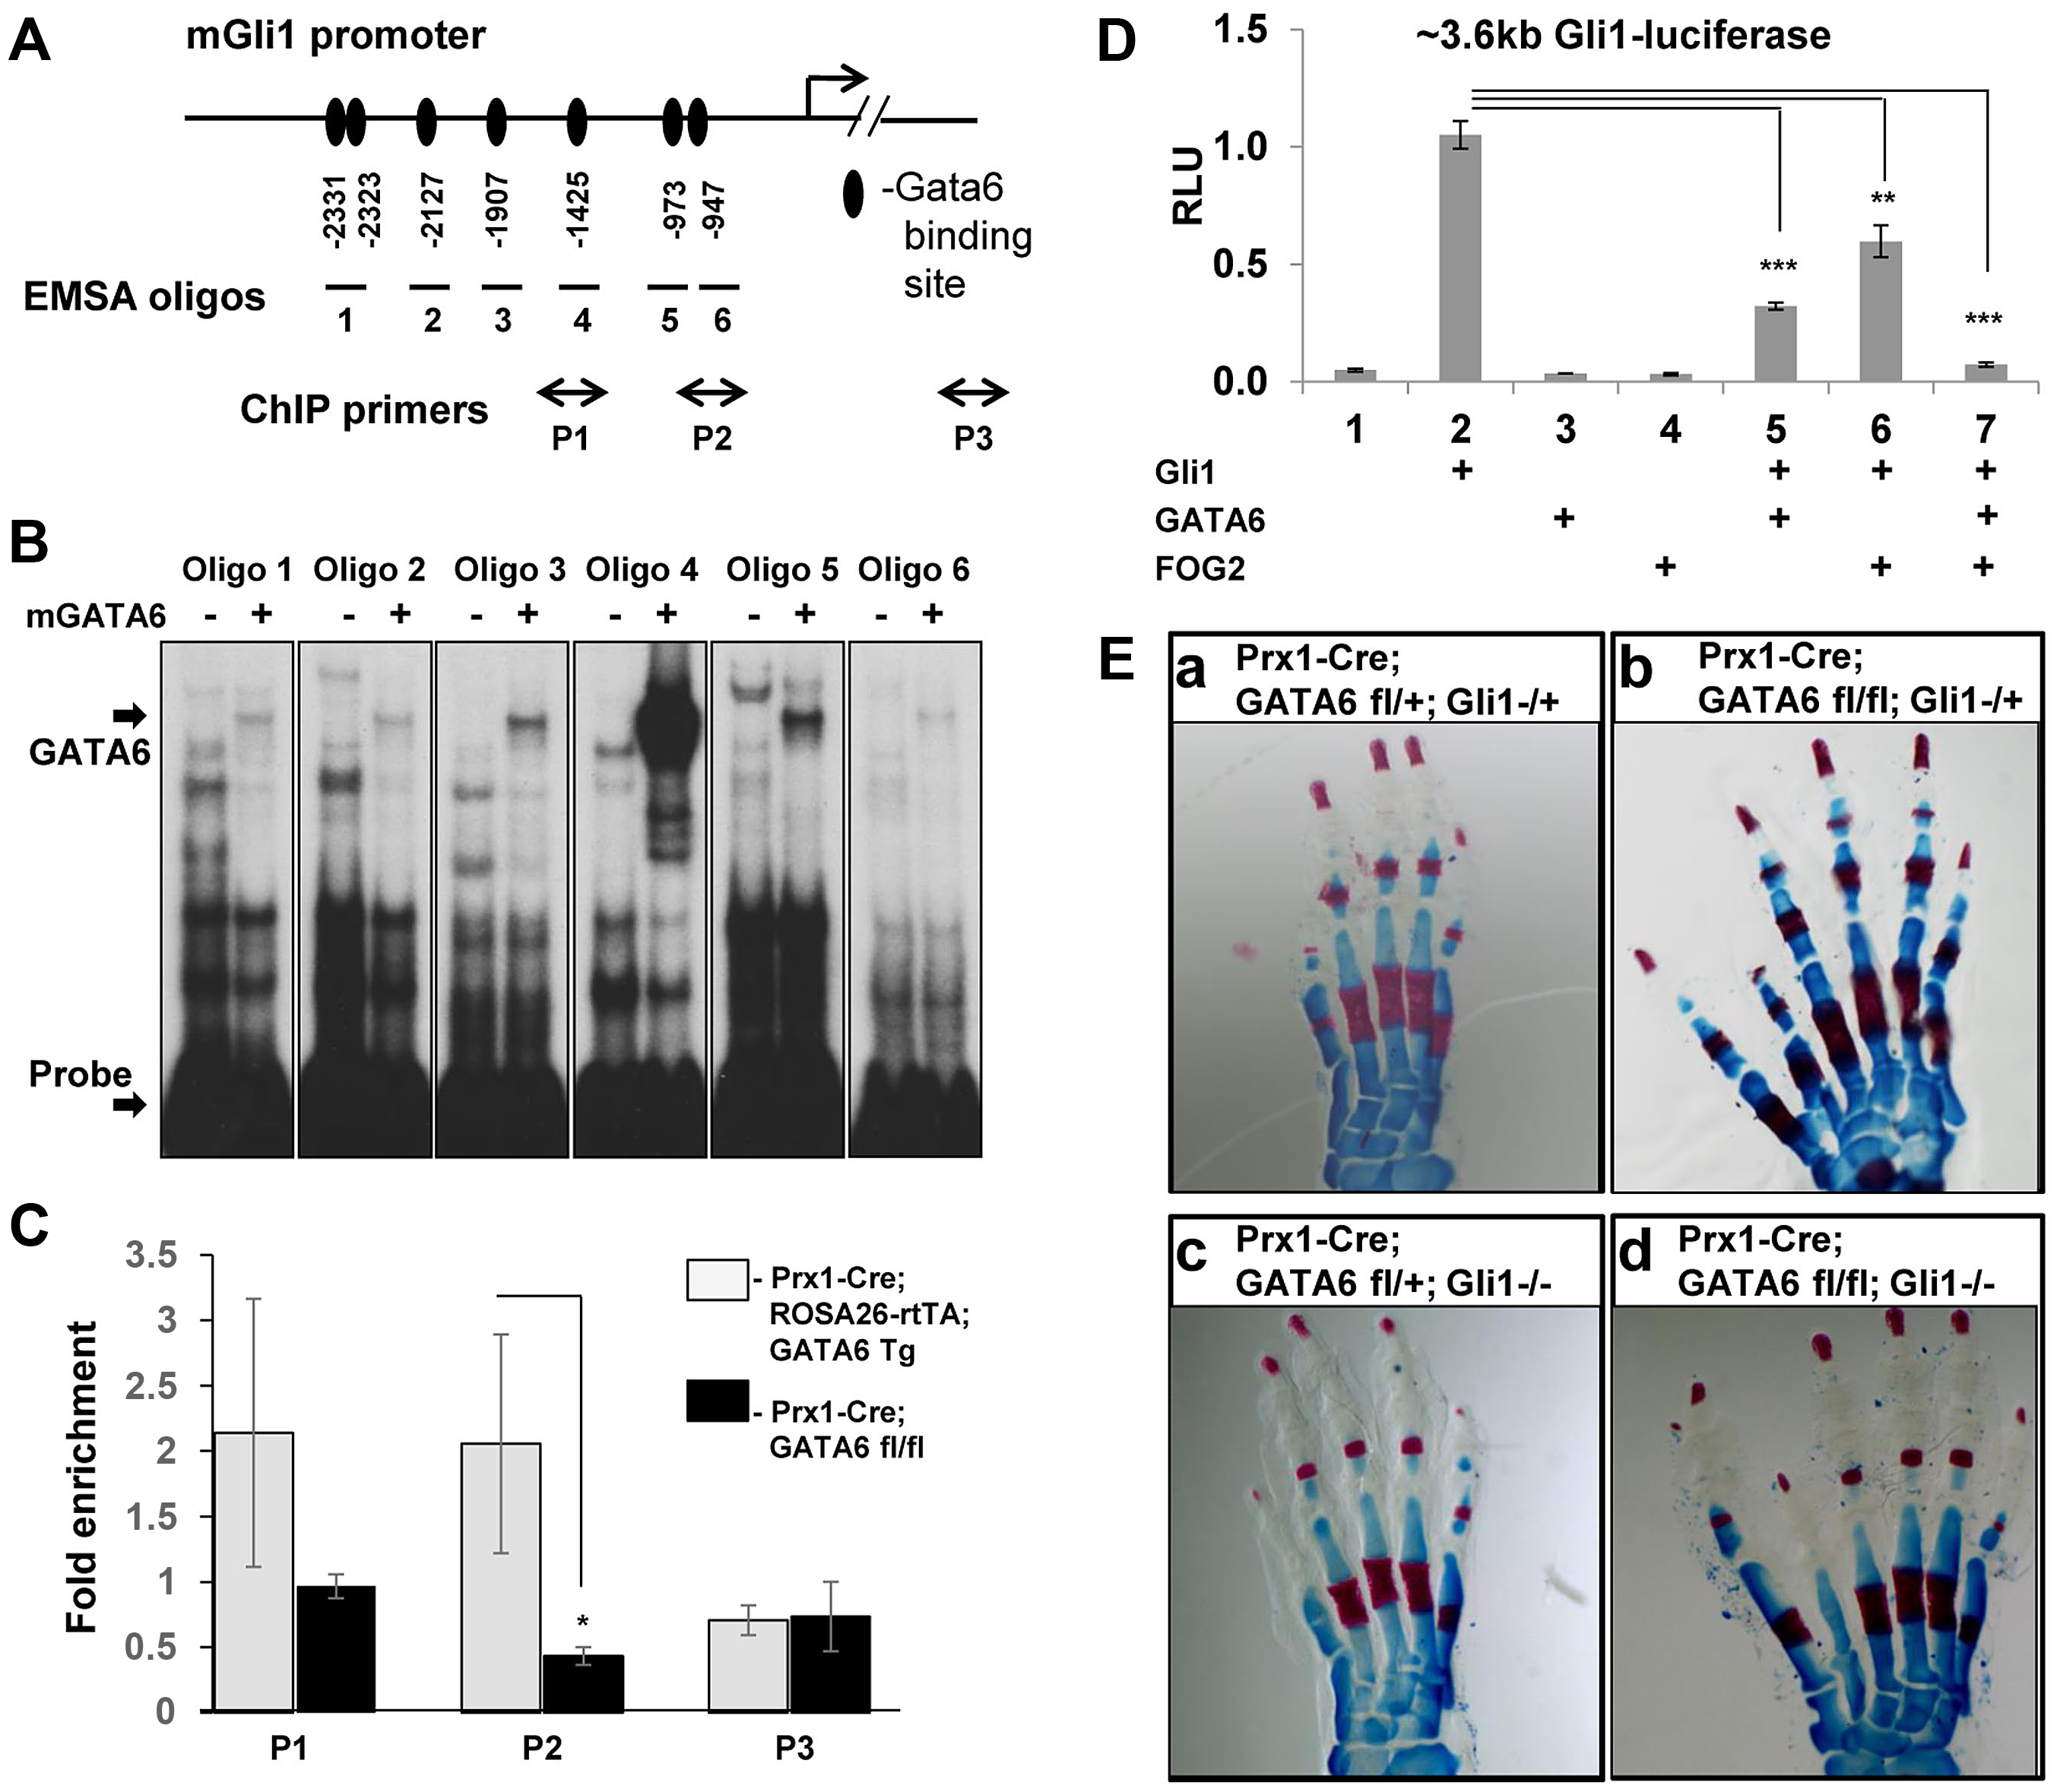 GATA6 binds to regulatory regions that control the expression of the mouse <i>Gli1</i> gene and blocks expression of reporters driven by this sequence. Loss of <i>Gli1</i> cannot rescue polydactyly induced by conditional deletion of <i>GATA6</i> in mouse hindlimbs.